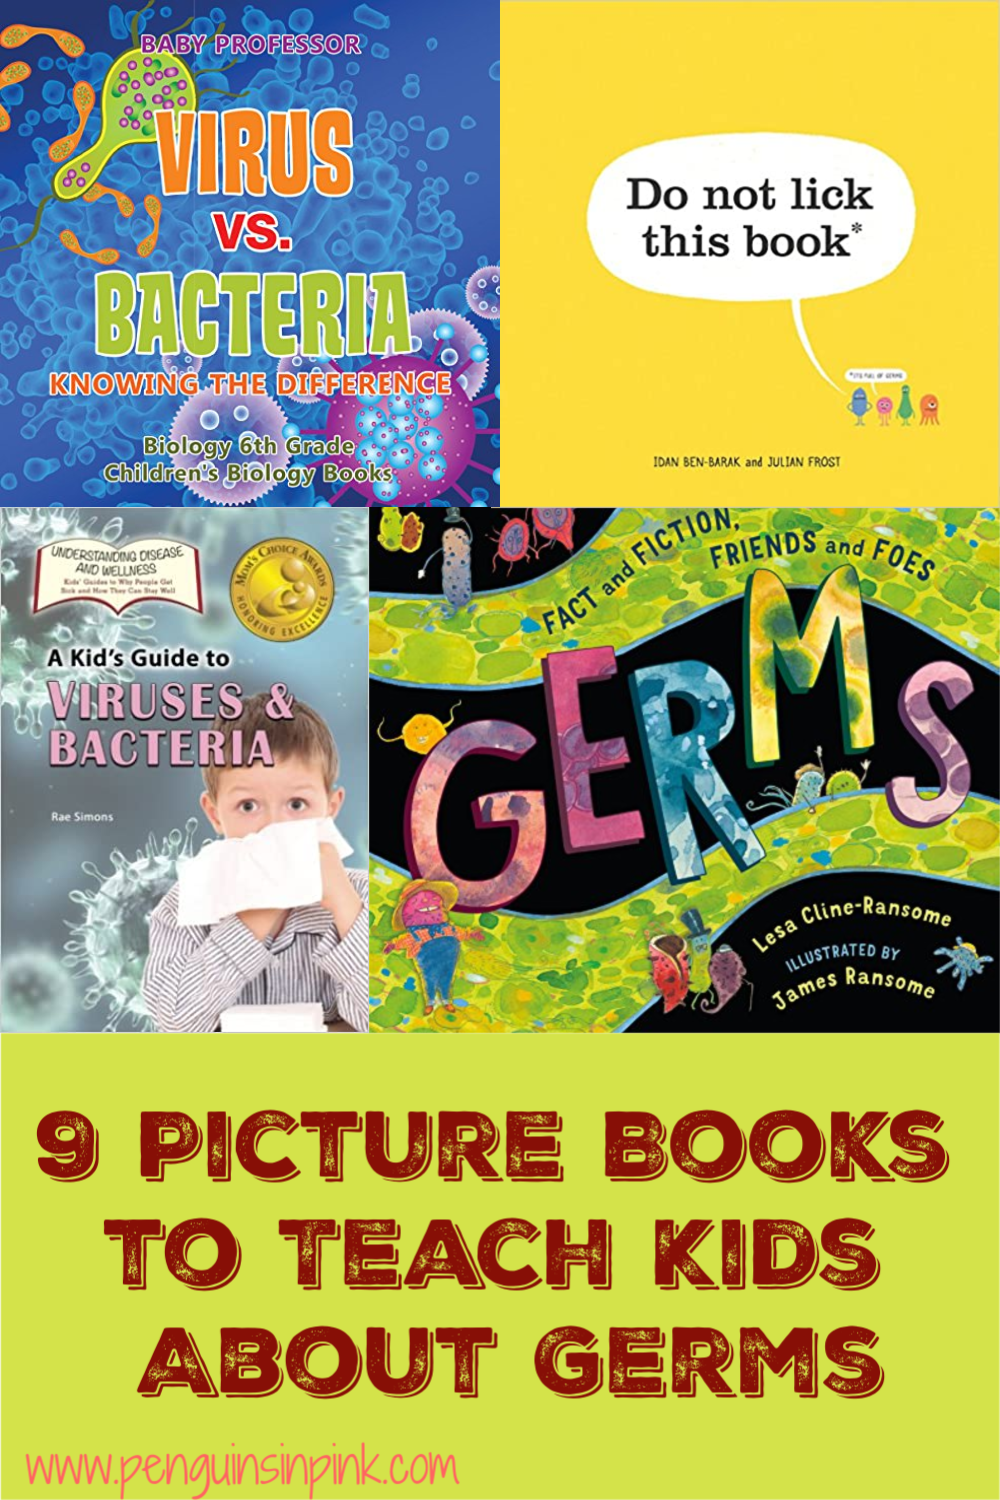 From preschoolers to 6th graders this list of 9 Picture Books to Teach Kids About Germs is sure to answer questions and educate your kids about the fascinating world of microbiology.